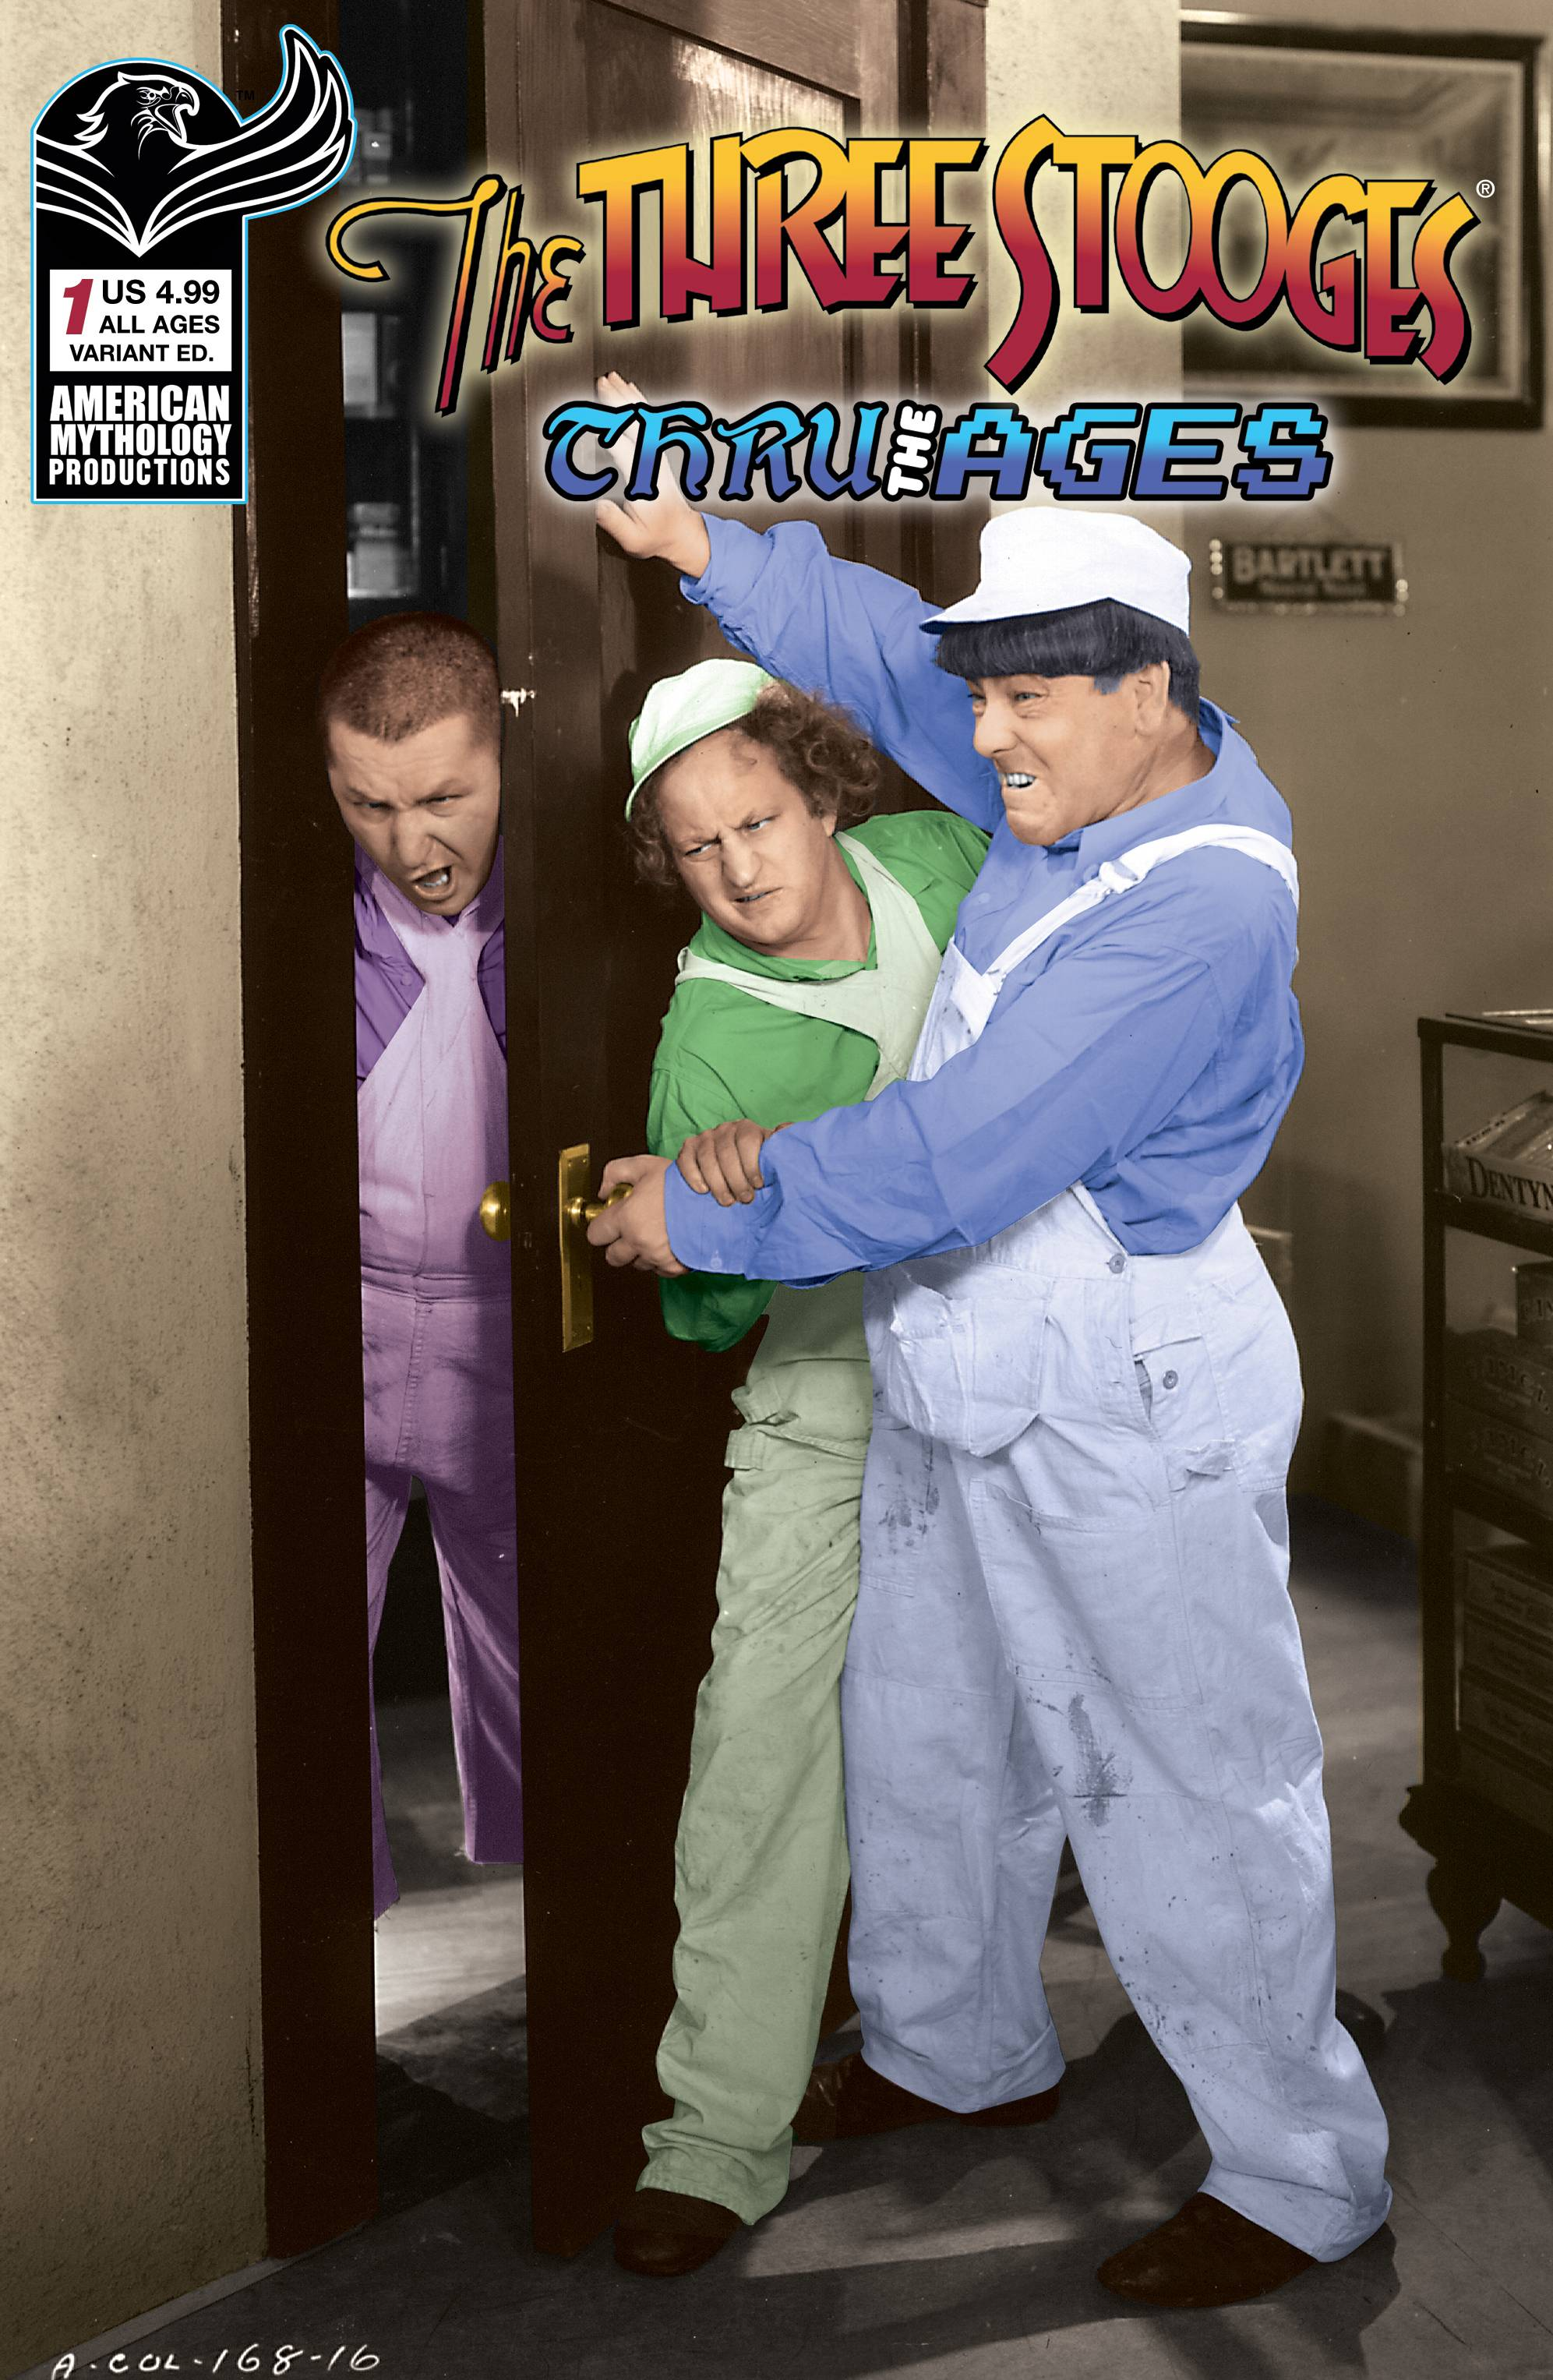 THREE STOOGES THROUGH THE AGES #1 CVR B PHOTO